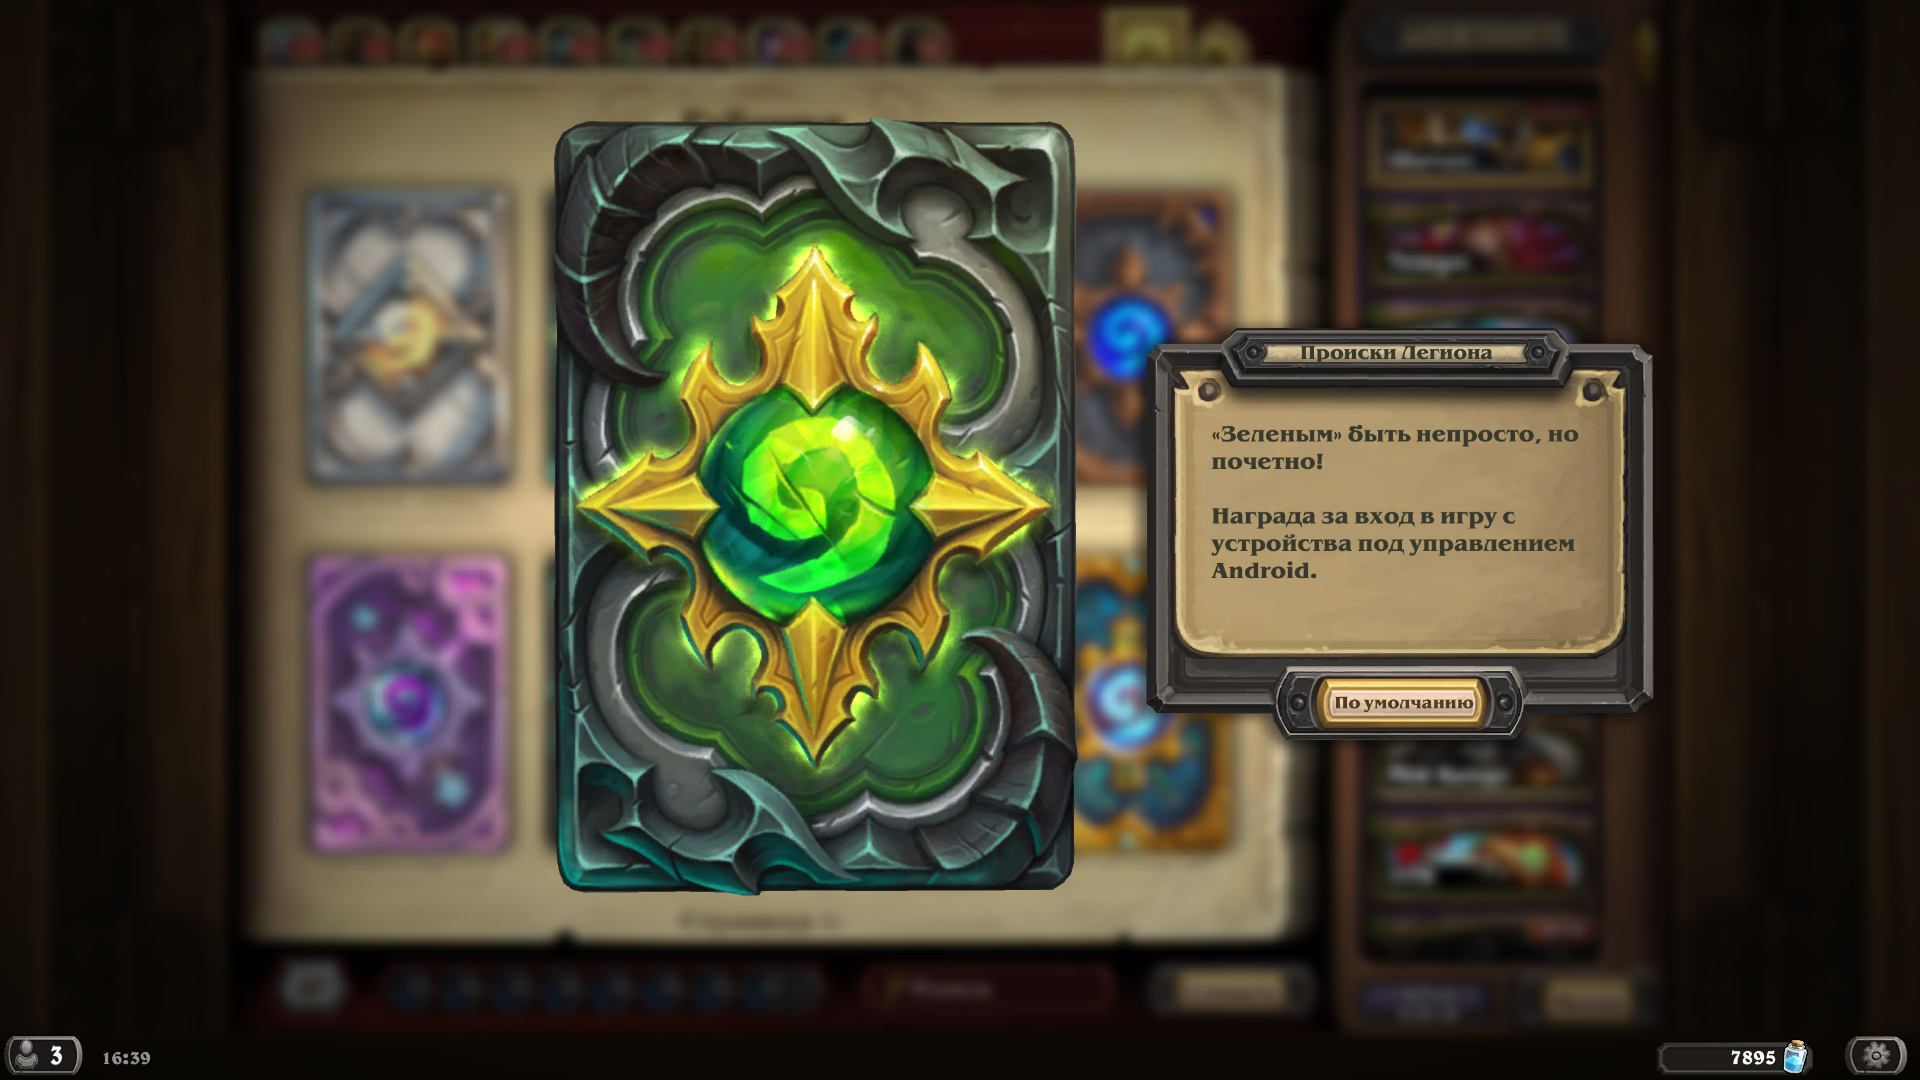 Buy LEGION SHEMES - Hearthstone - Cardback for Android and download